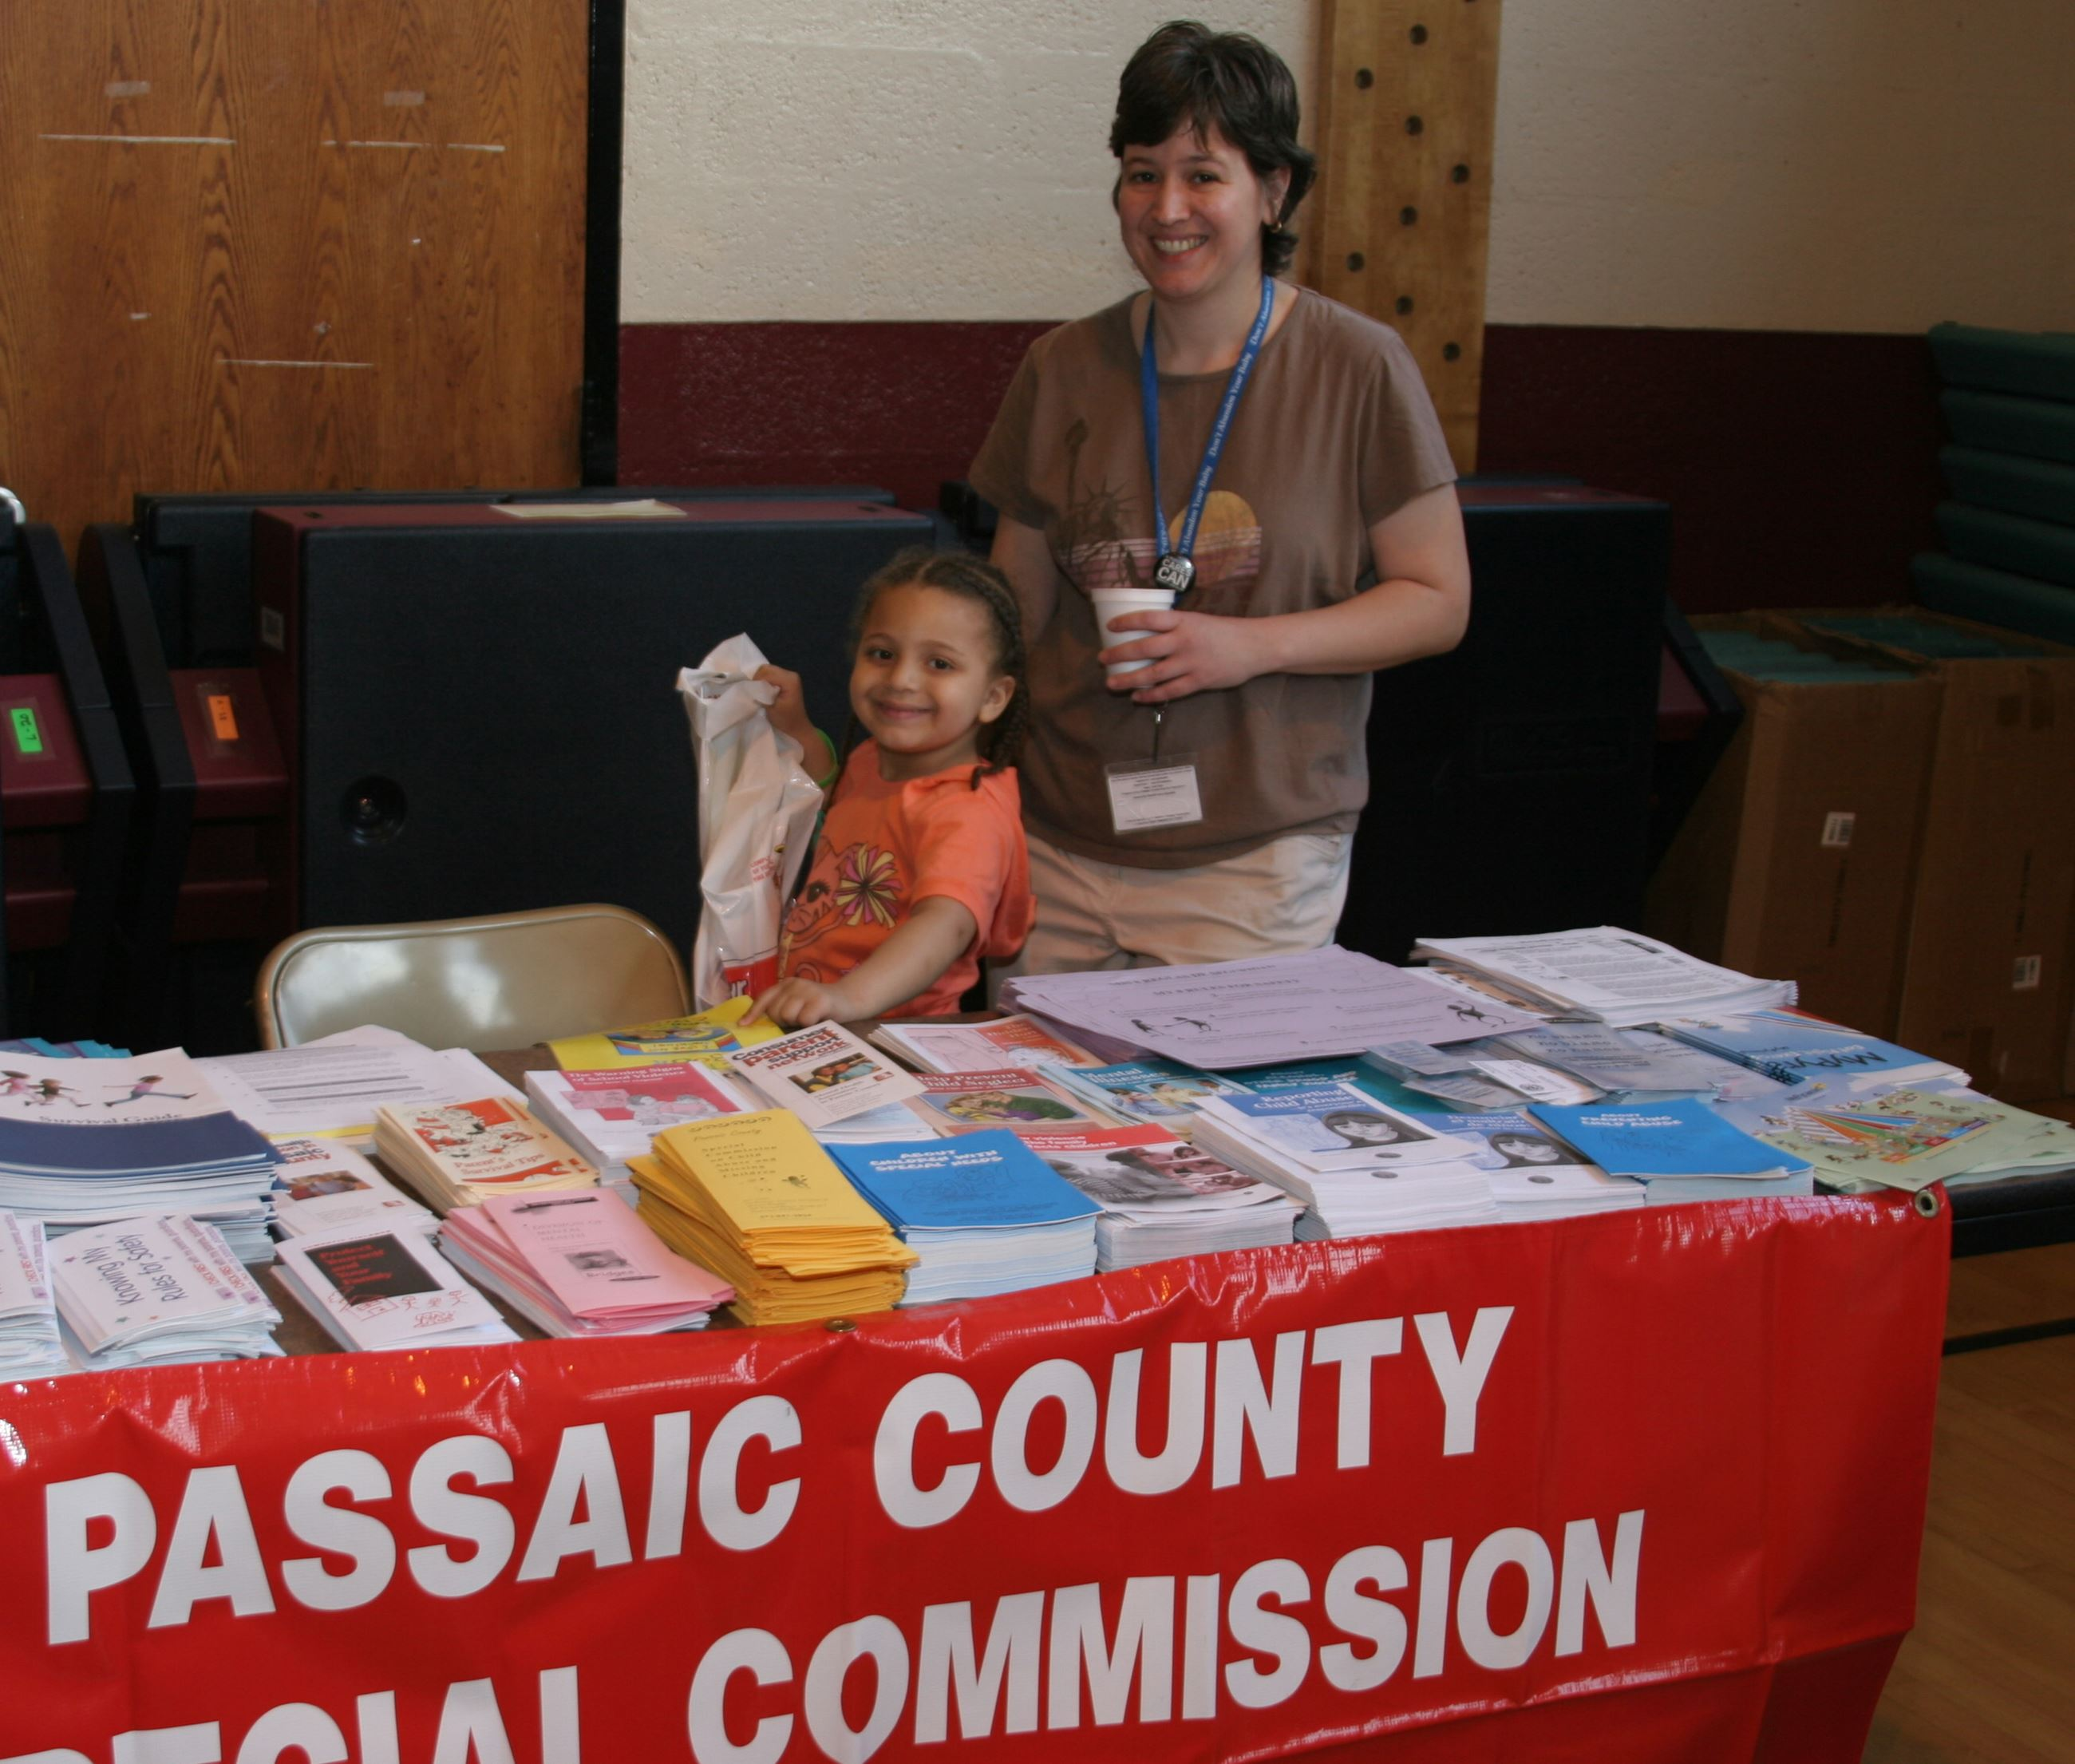 Passaic County table at the Safety Fair